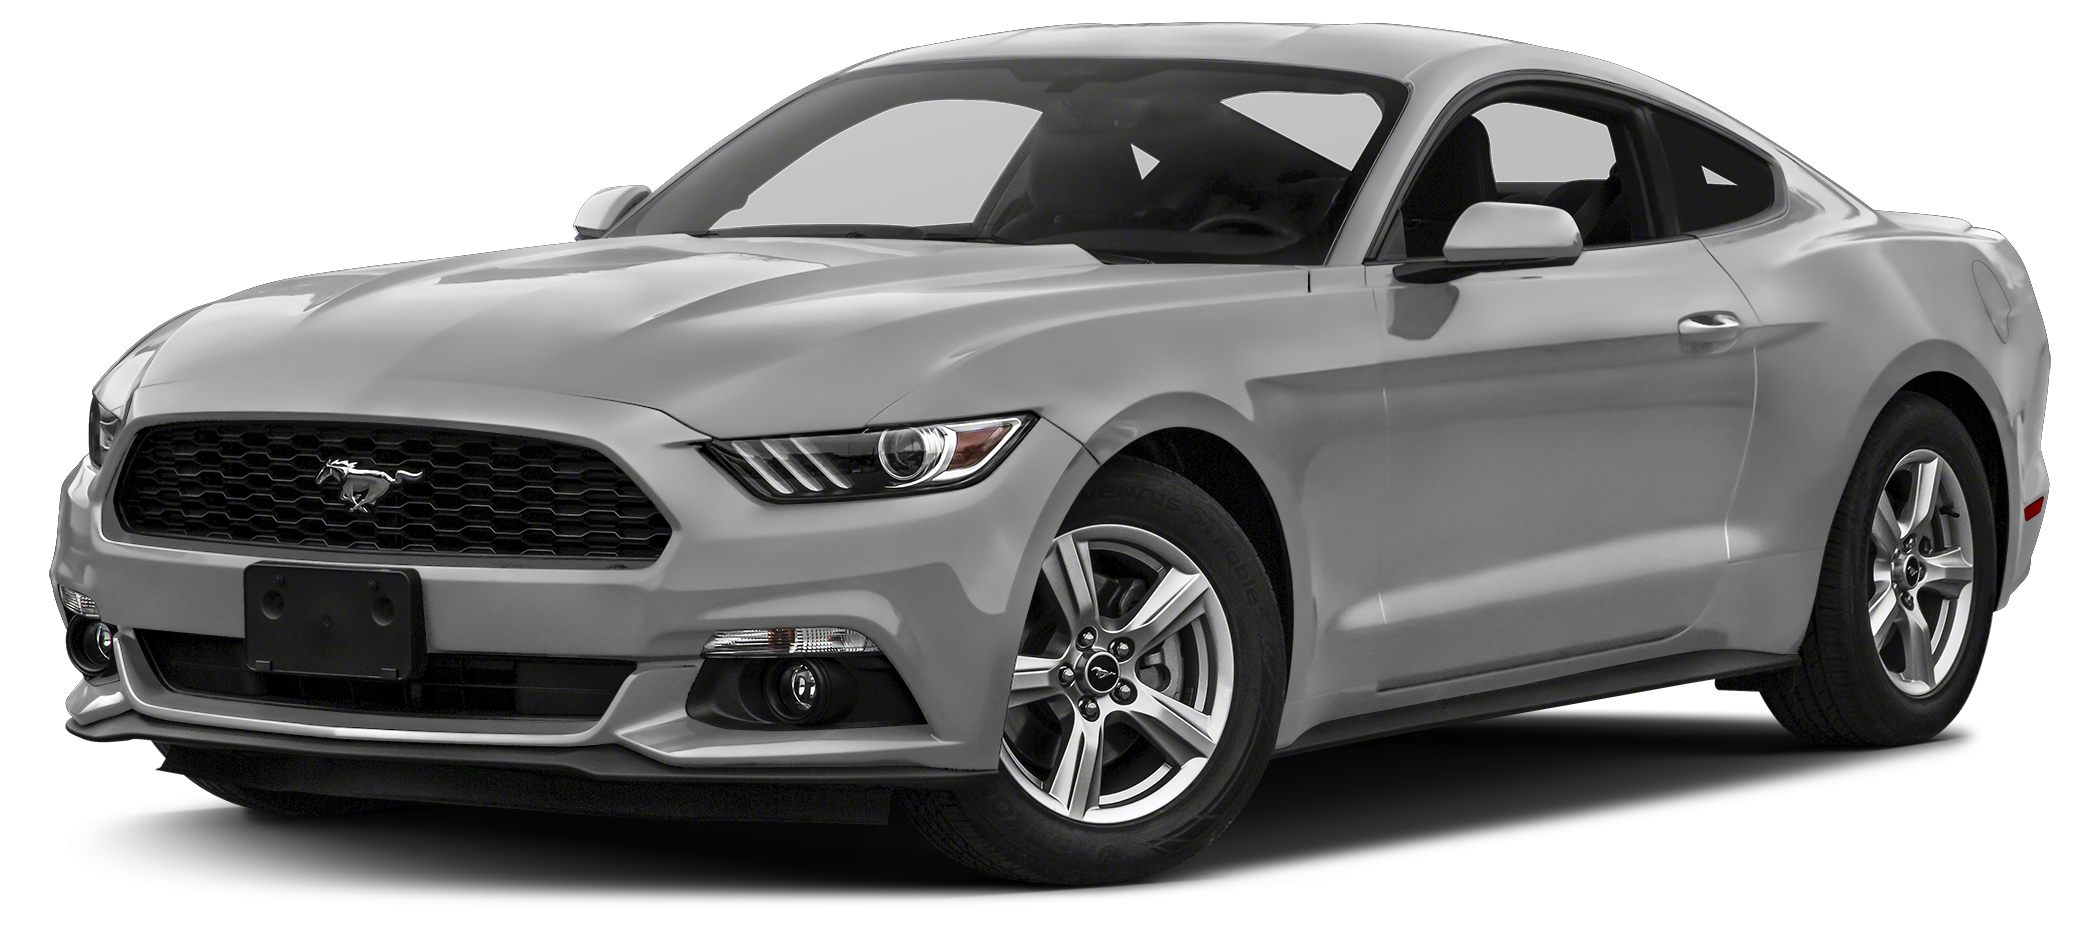 2016 Ford Mustang EcoBoost Premium The Ford Mustang is an American classic that lives on The body